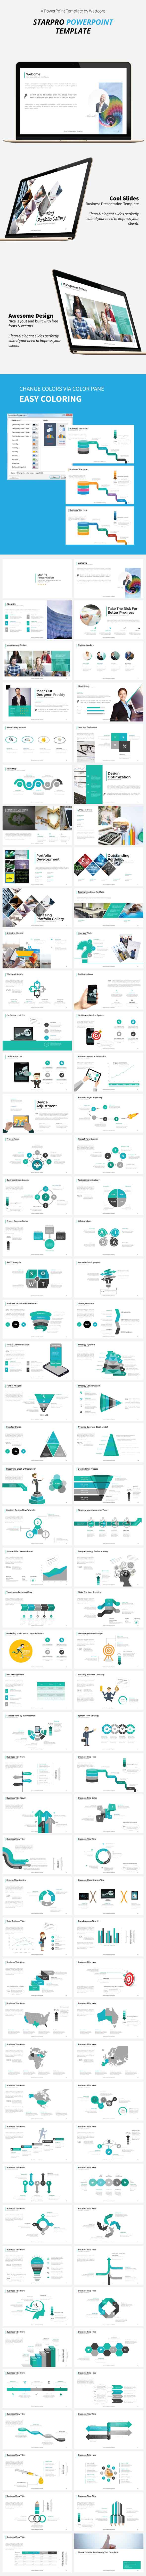 StarPro Presentation Template - Business PowerPoint Templates